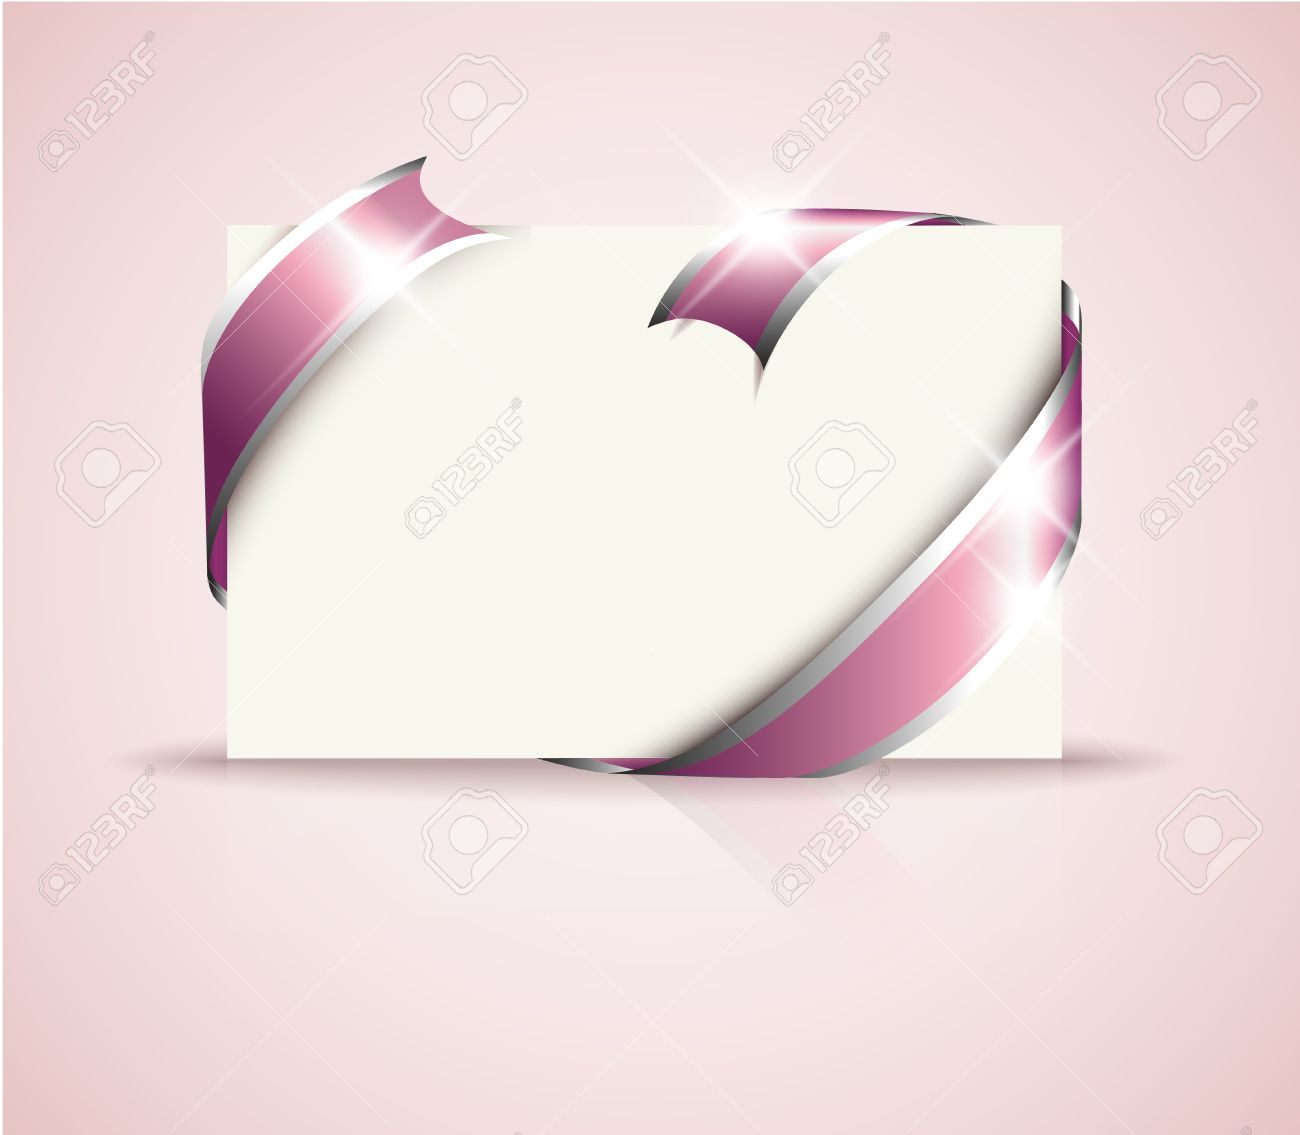 wedding card pink around blank white paper where you should vector wedding card pink around blank white paper where you should write your text